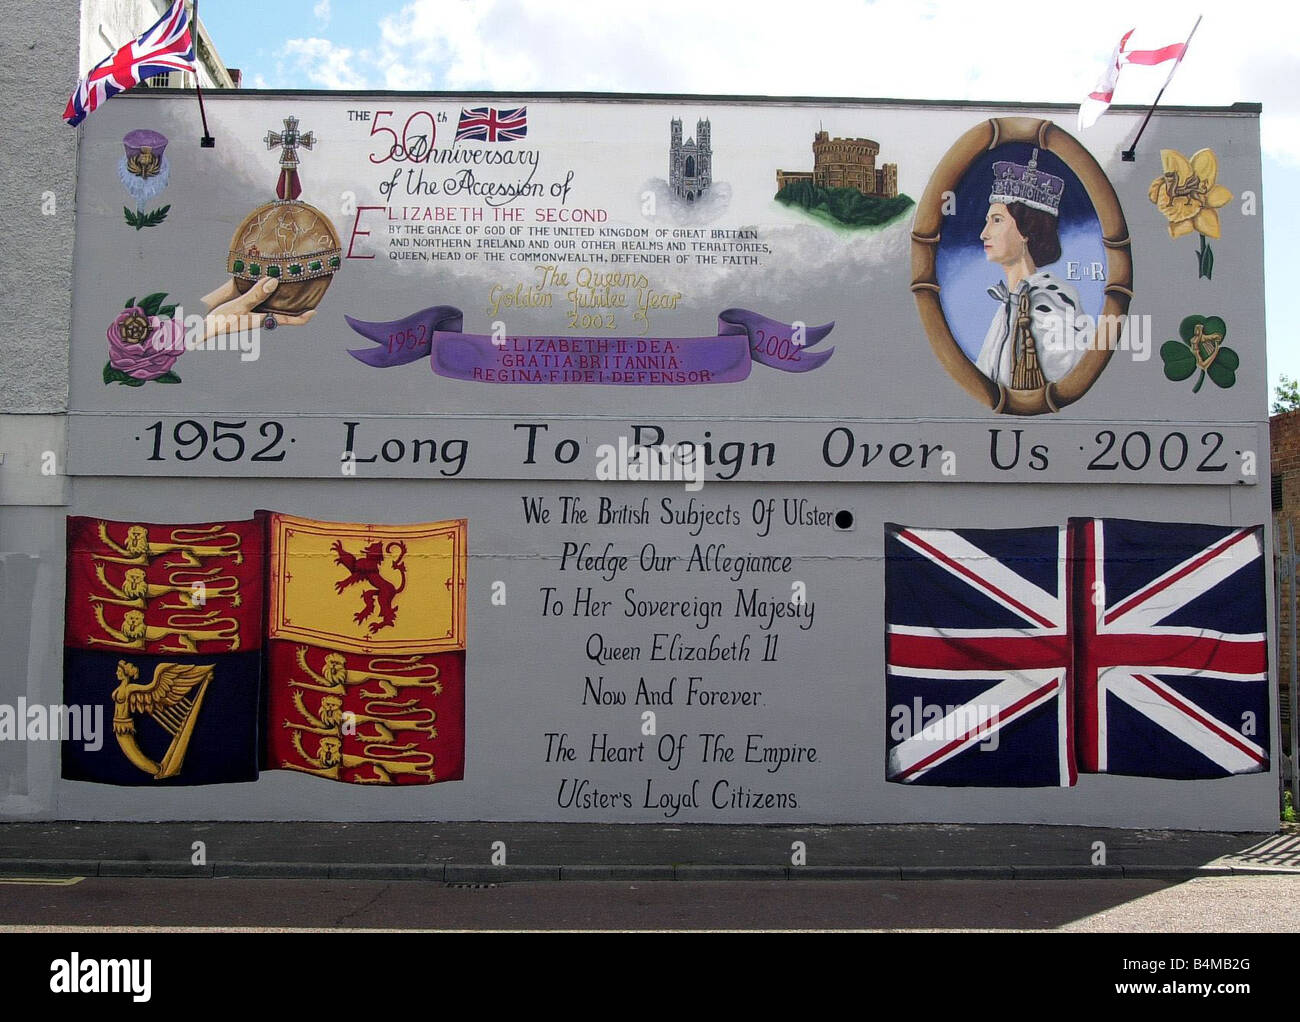 Golden Jubilee Mural Unveiled On Shankill Road June 2002 A Golden Jubilee mural at North Howard Street Belfast Northern - Stock Image